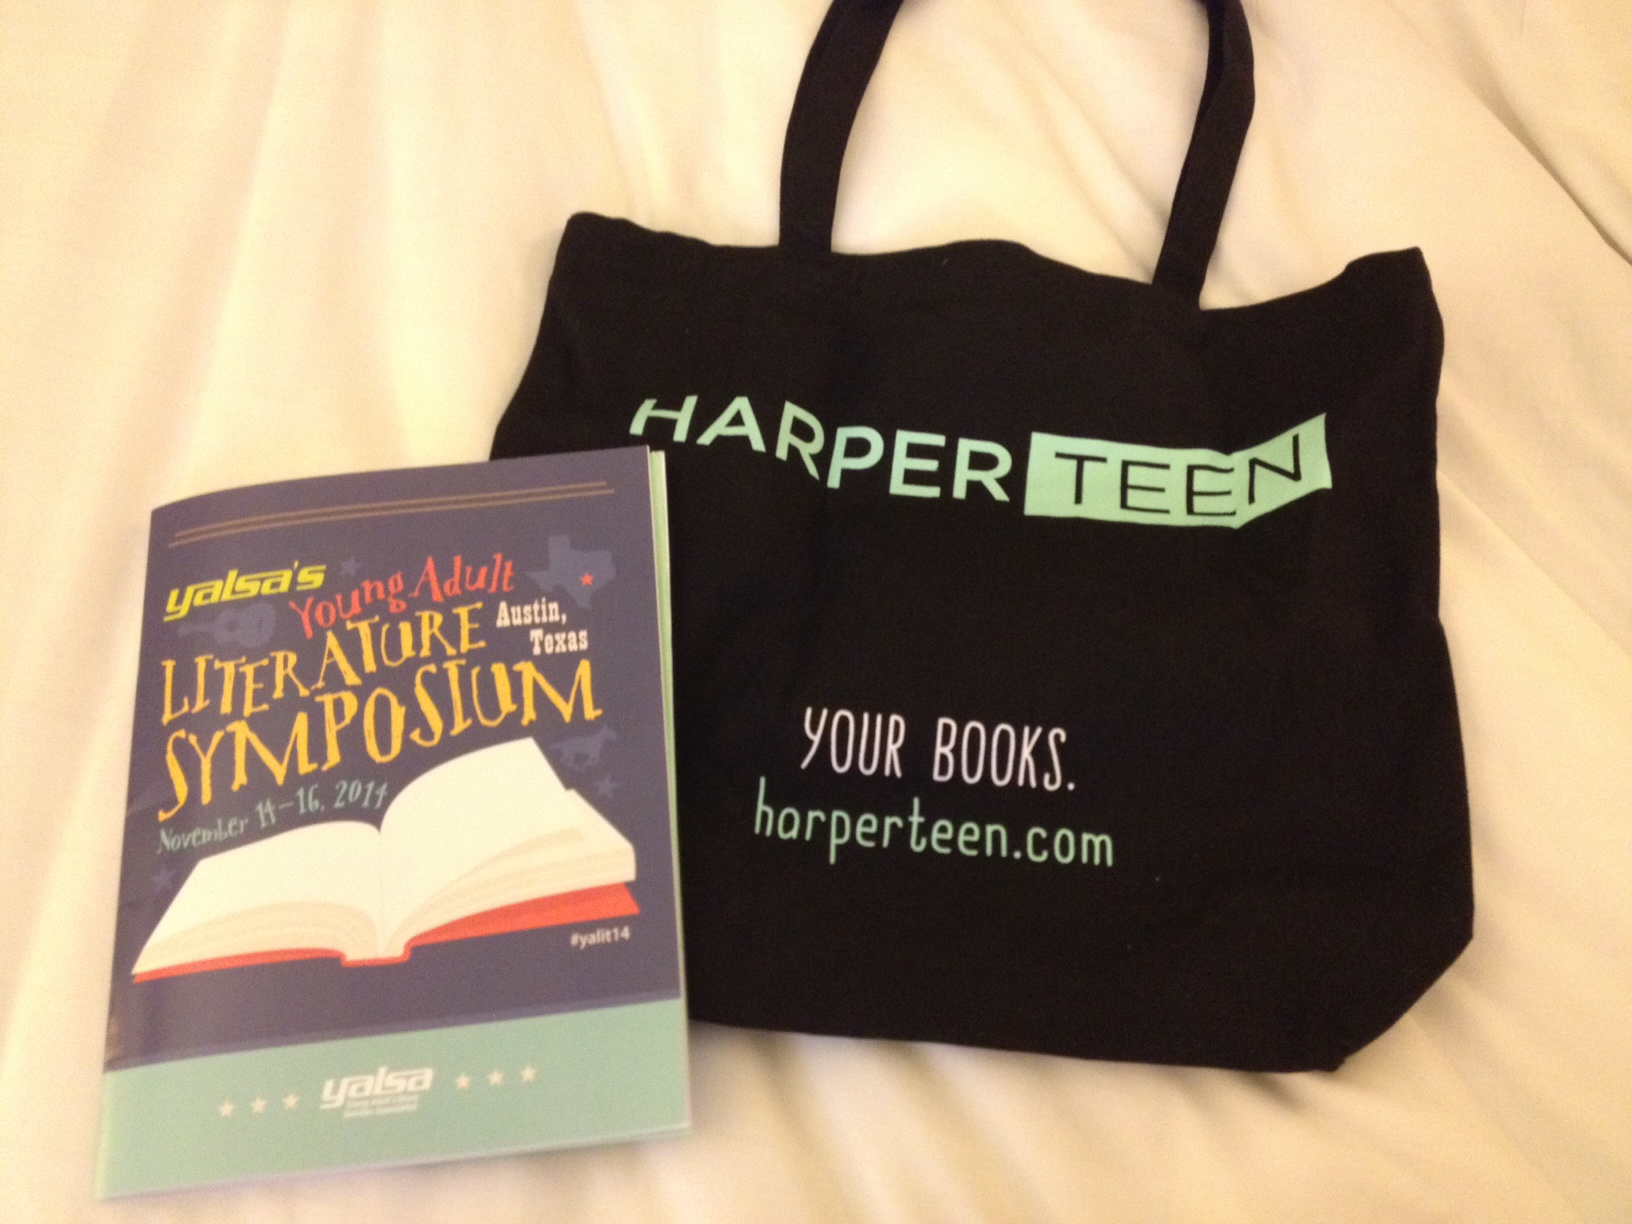 Five Things to Love at YALSA'S YA Lit Symposium